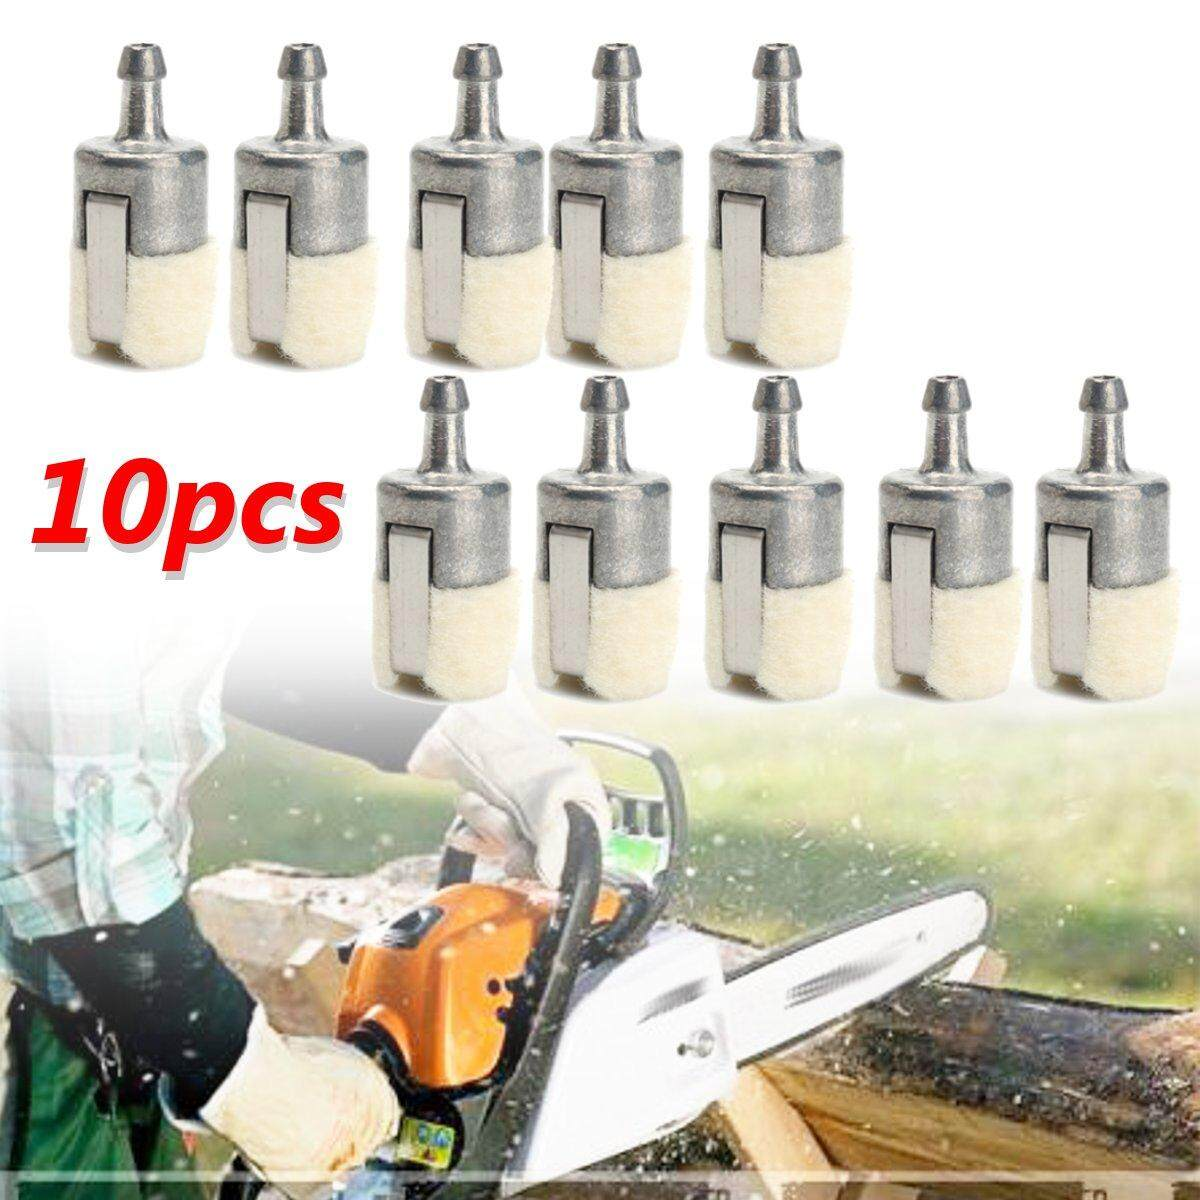 10Pc Gas Fuel Filter Pickup for Homelite Echo Husqvarna Stihl Pouland Chainsaws